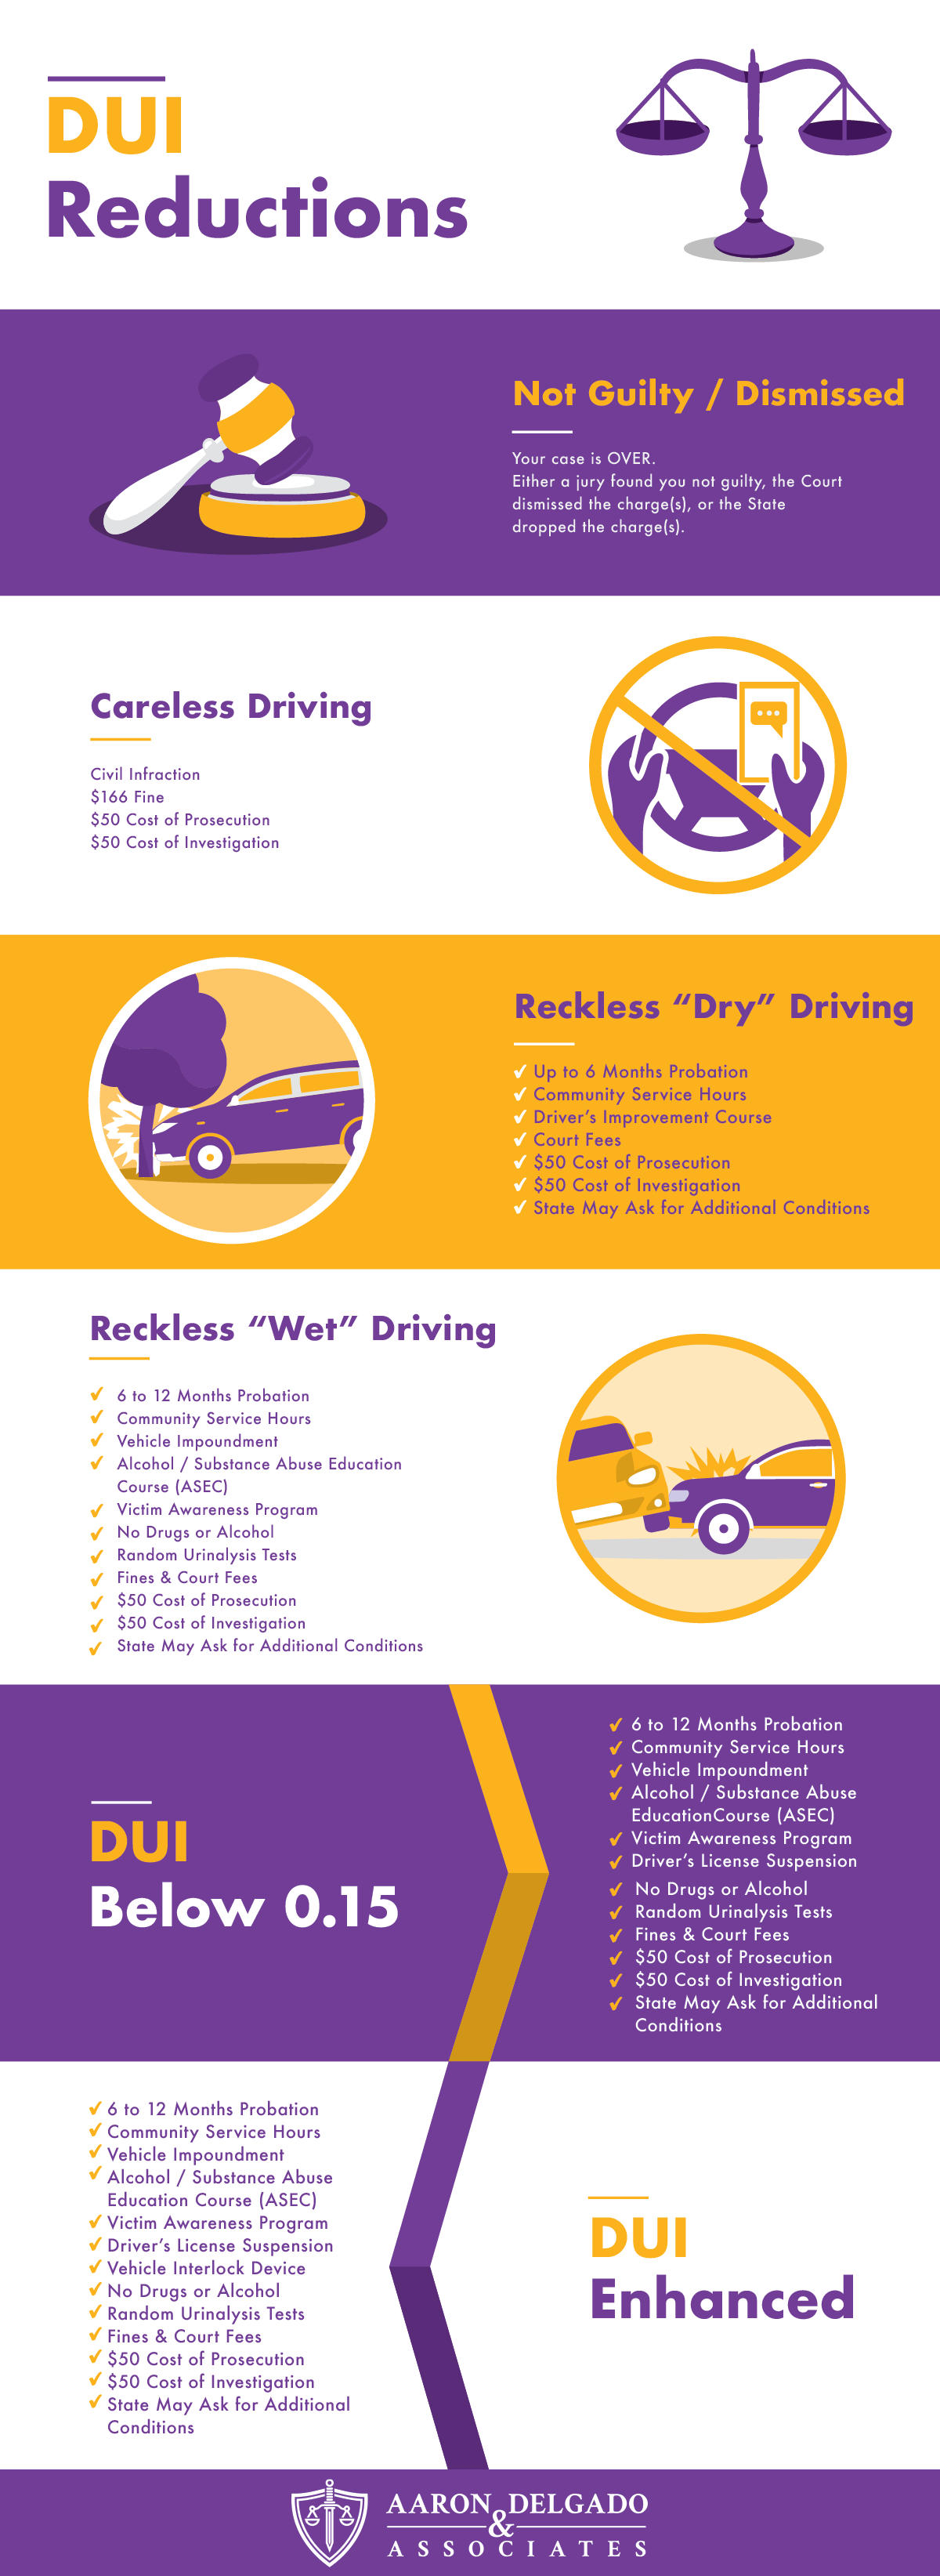 DUI reductions infographic